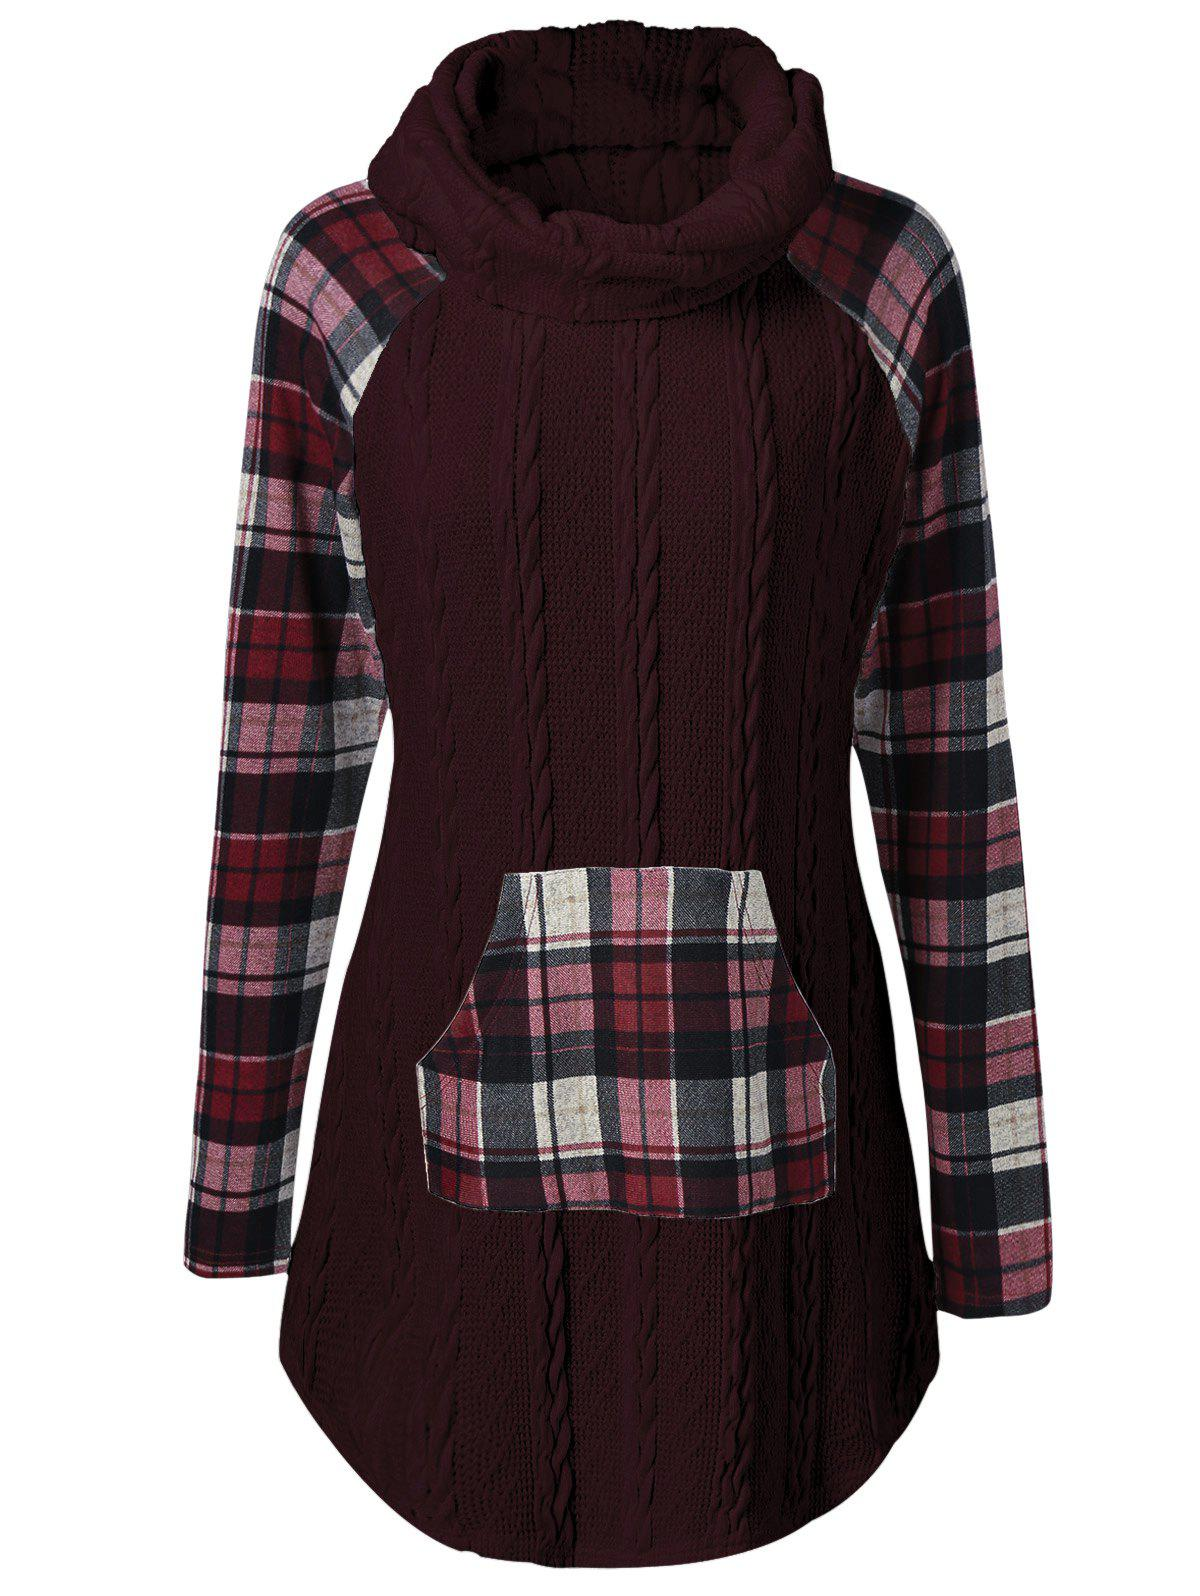 Plaid Cable Knit Tunic Sweater plaid trim tunic top